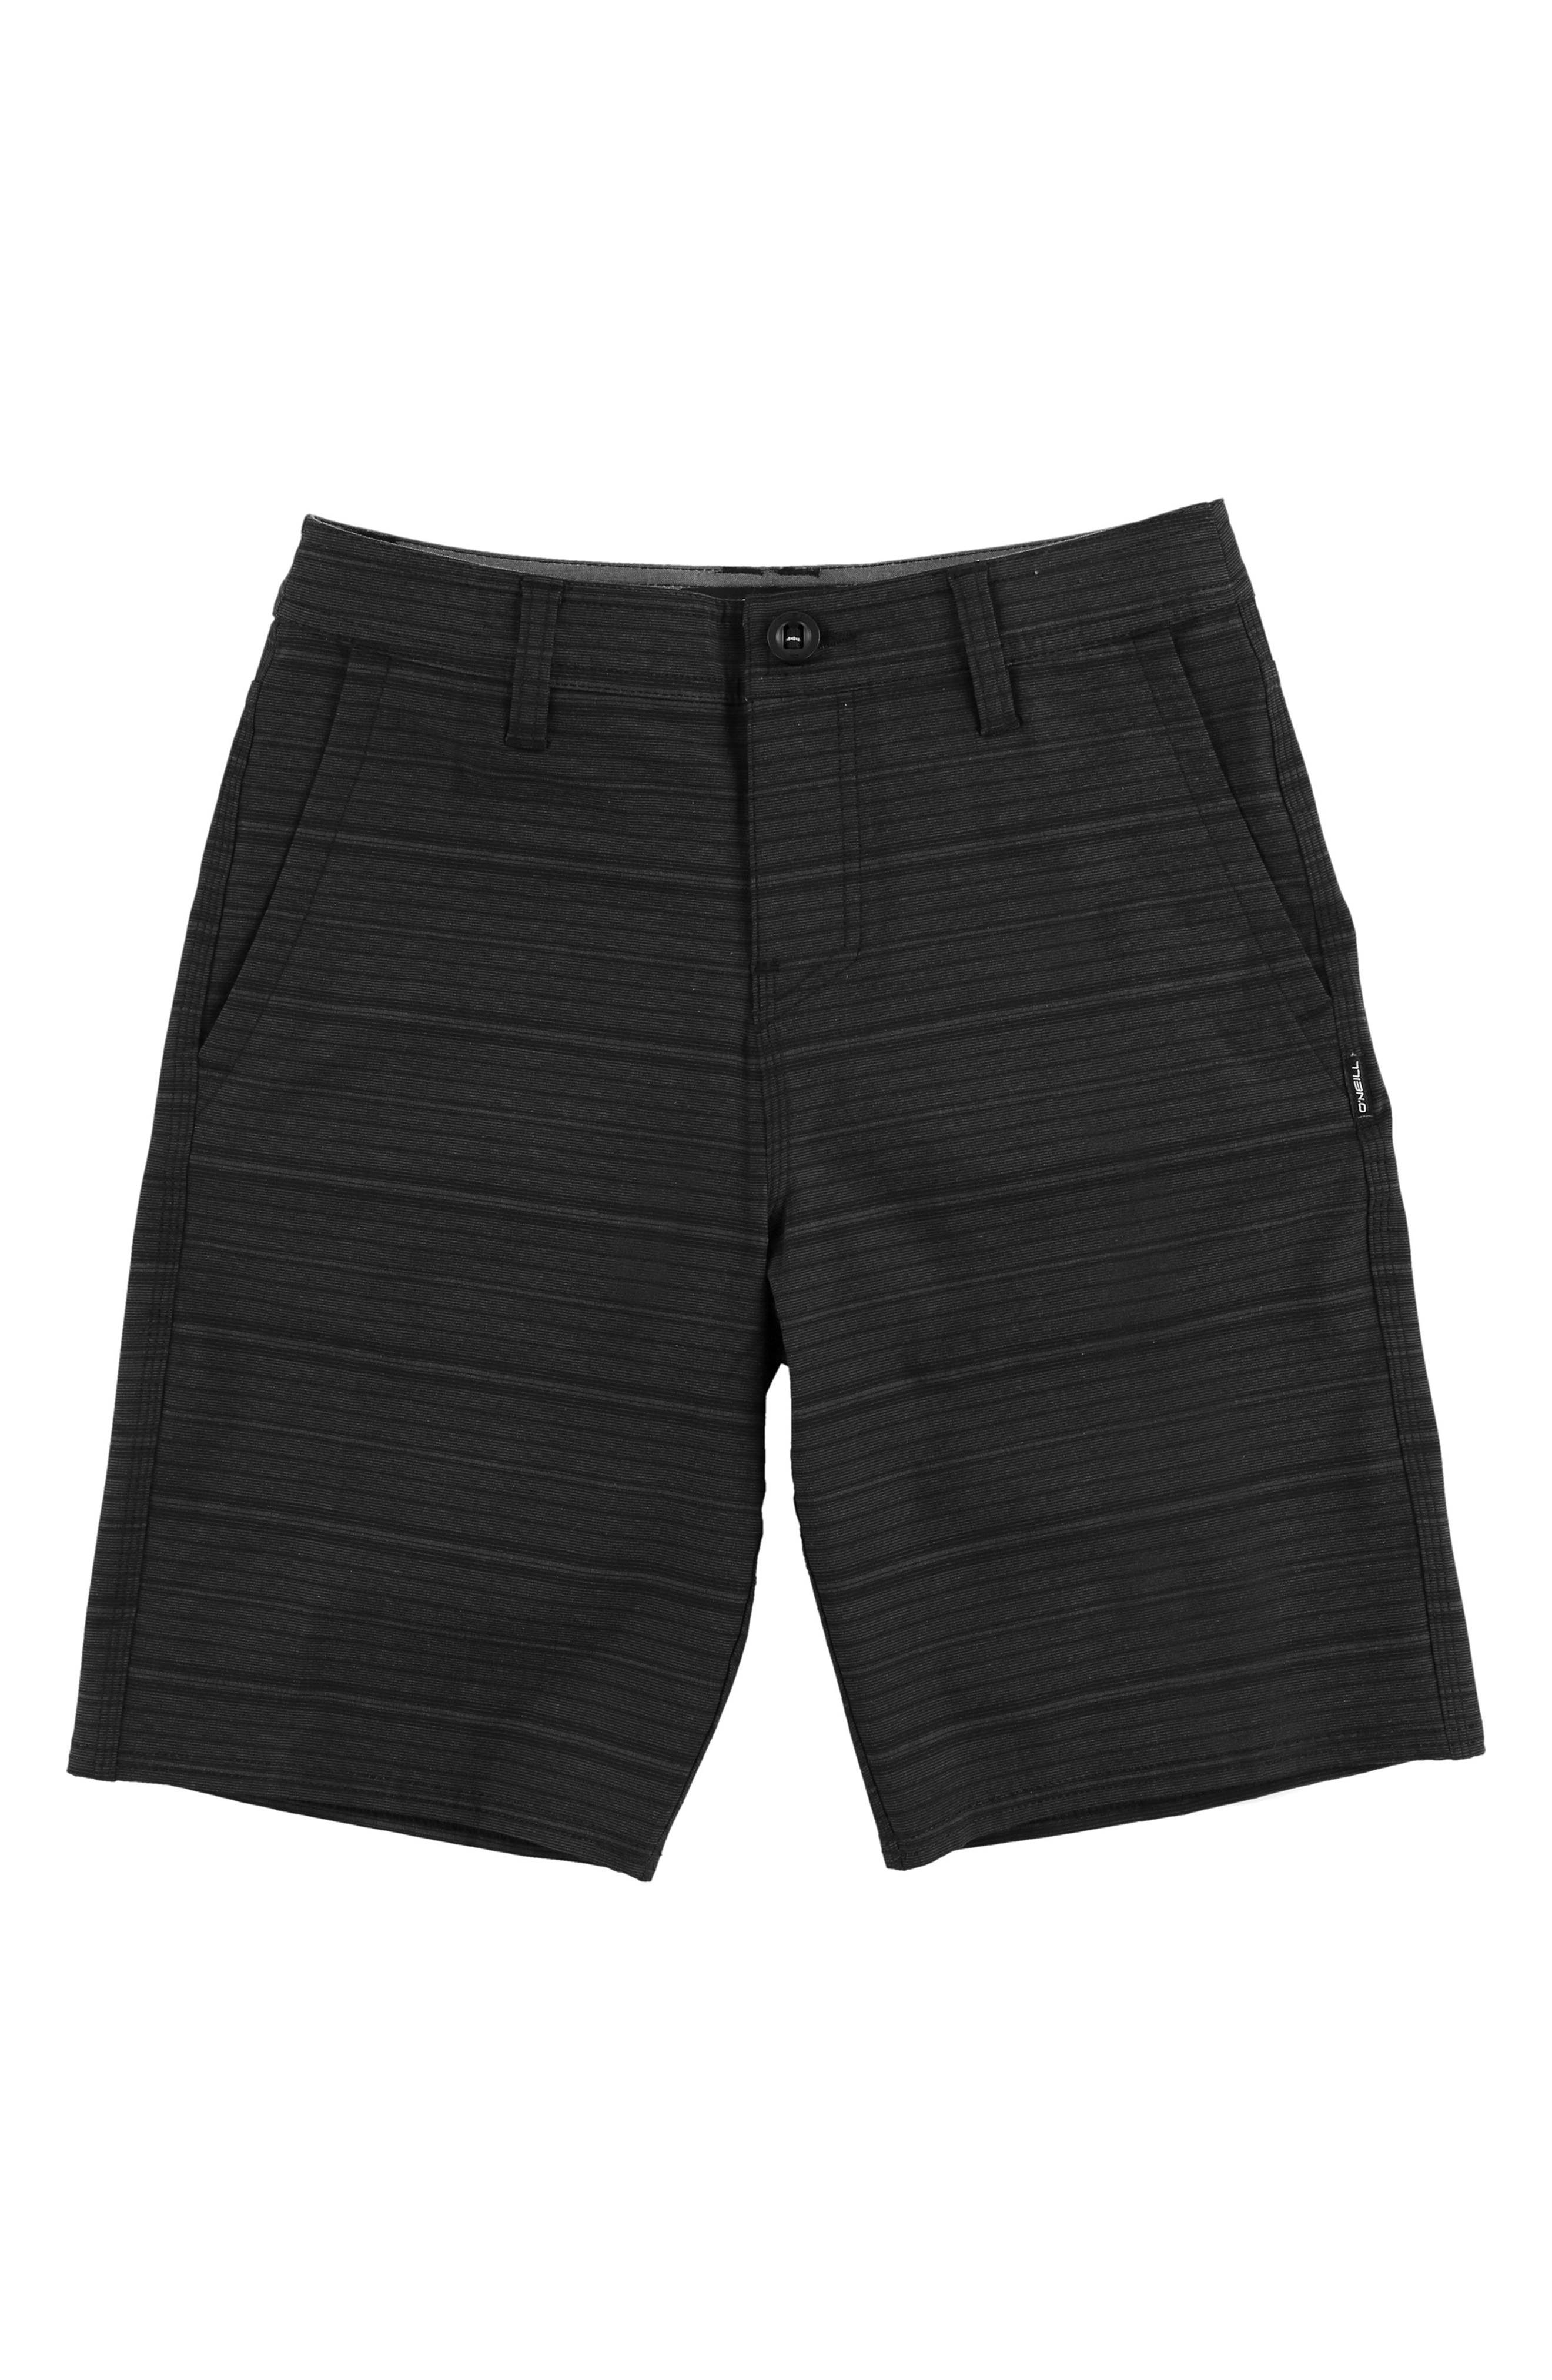 Locked Stripe Hybrid Shorts,                         Main,                         color, ASPHALT